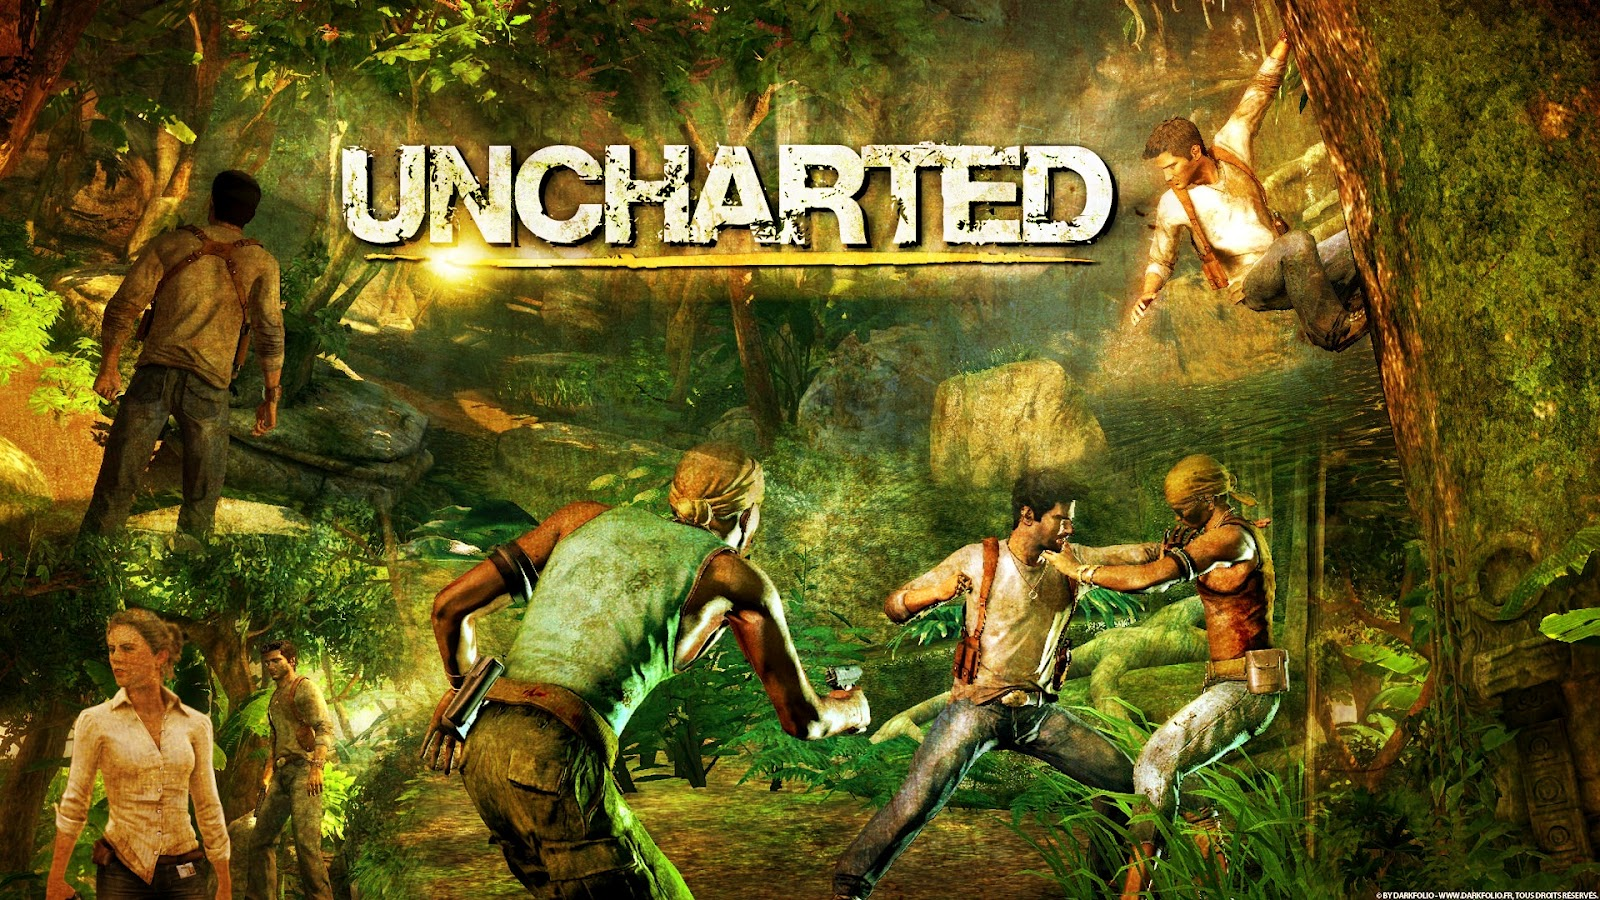 Kane blog picz wallpaper uncharted 2 hd - Uncharted wallpaper ...